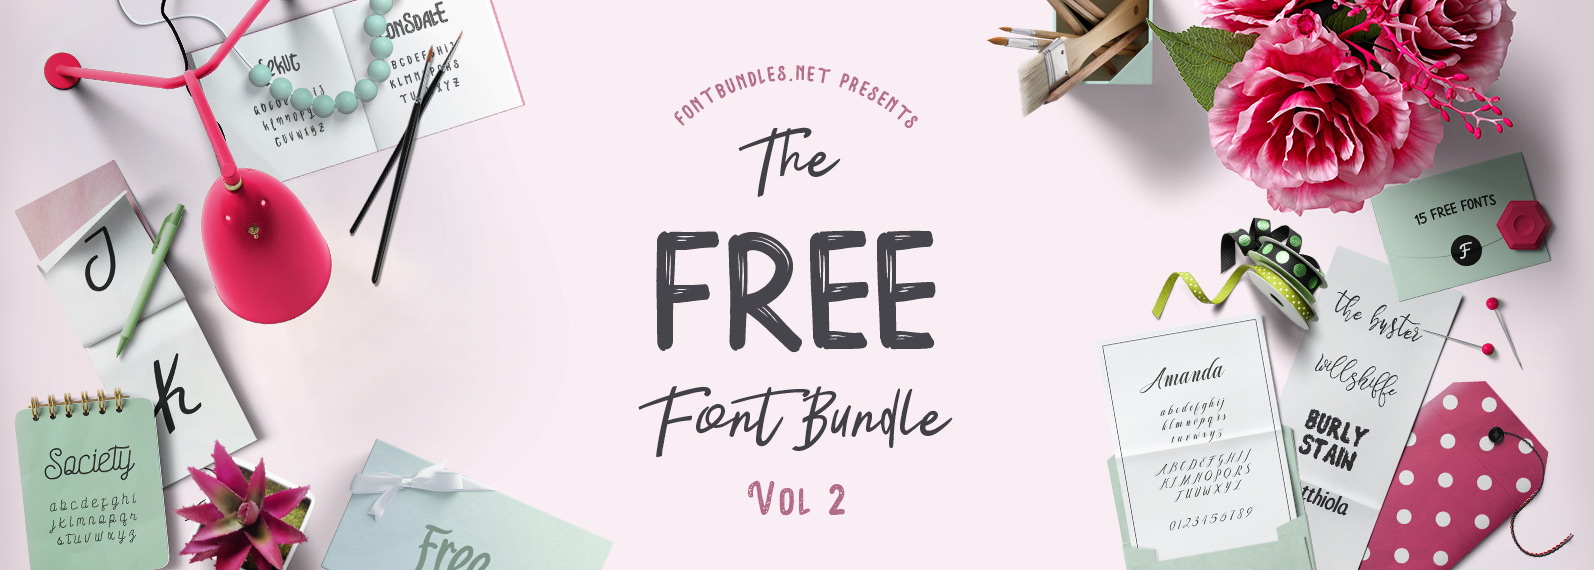 The Free Font Bundle Vol II Cover